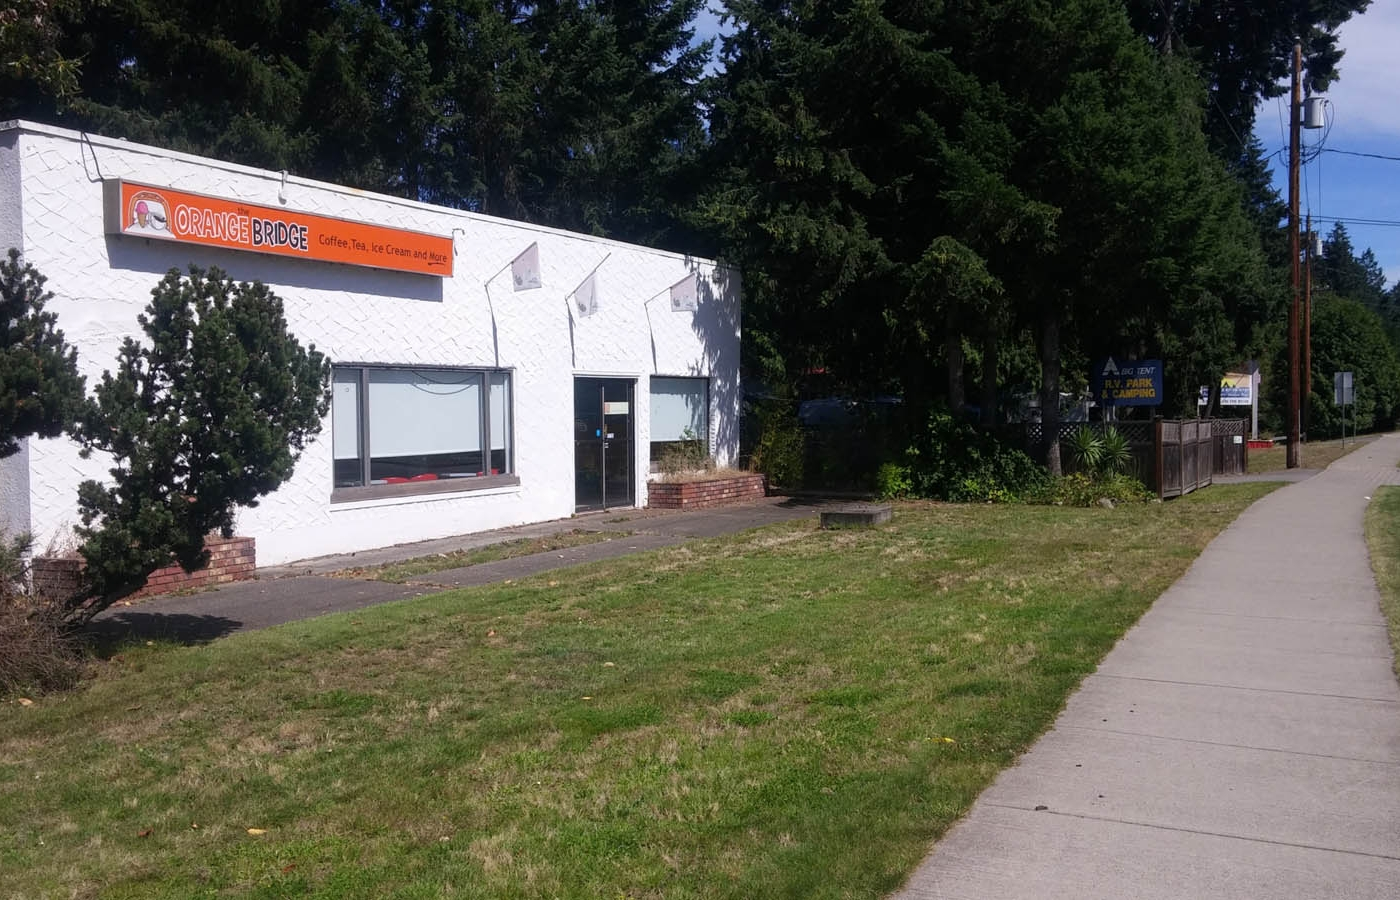 Big Tent RV Campground is a business for sale in BC.